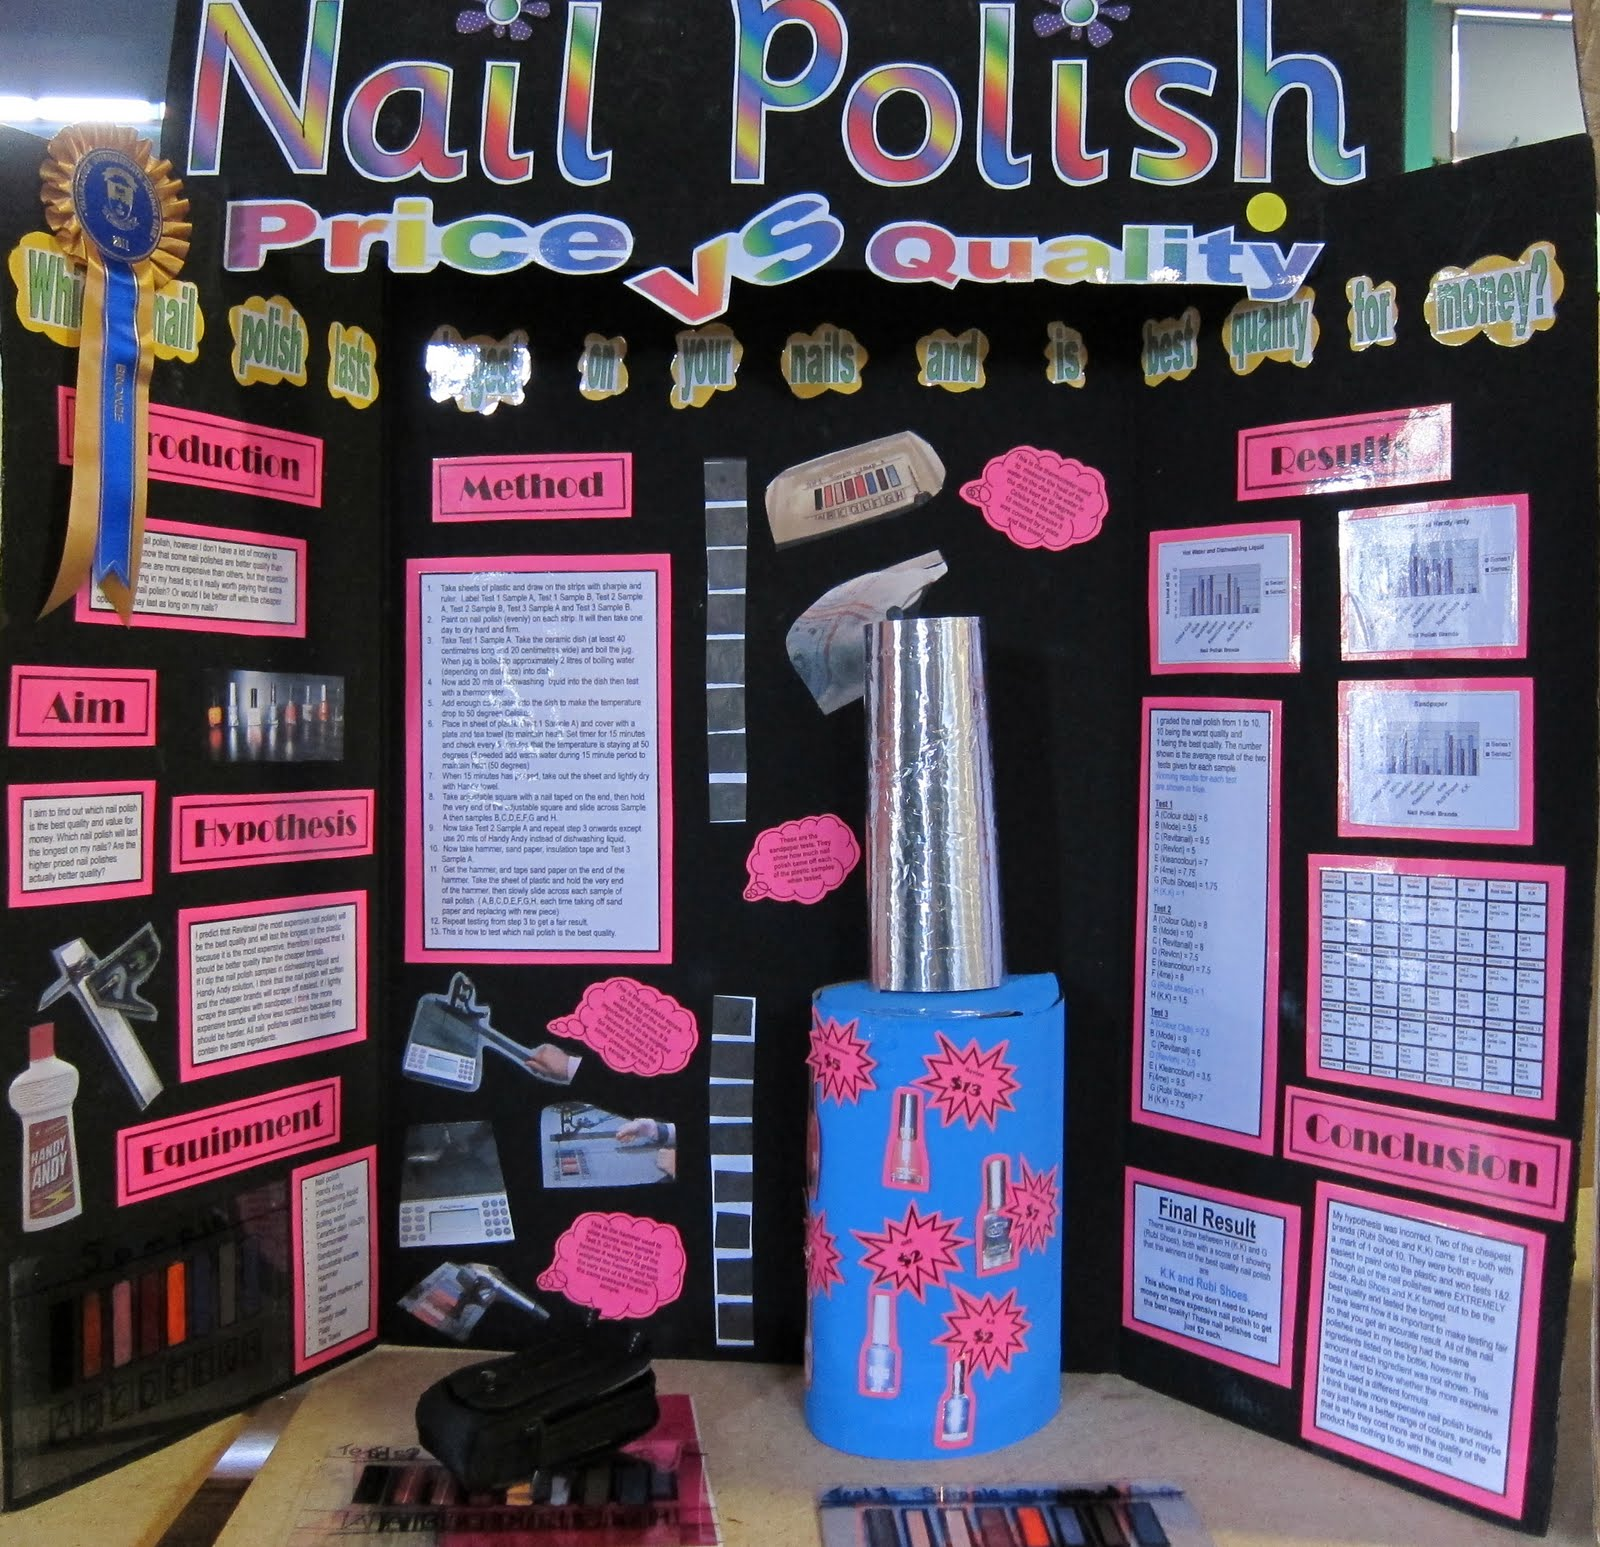 Nail polish is an interesting example when you want to show the importance of chemistry in our day to day life, through unexpected examples Well, did you know that nail polish is a true chemical recipe when studied in detail?